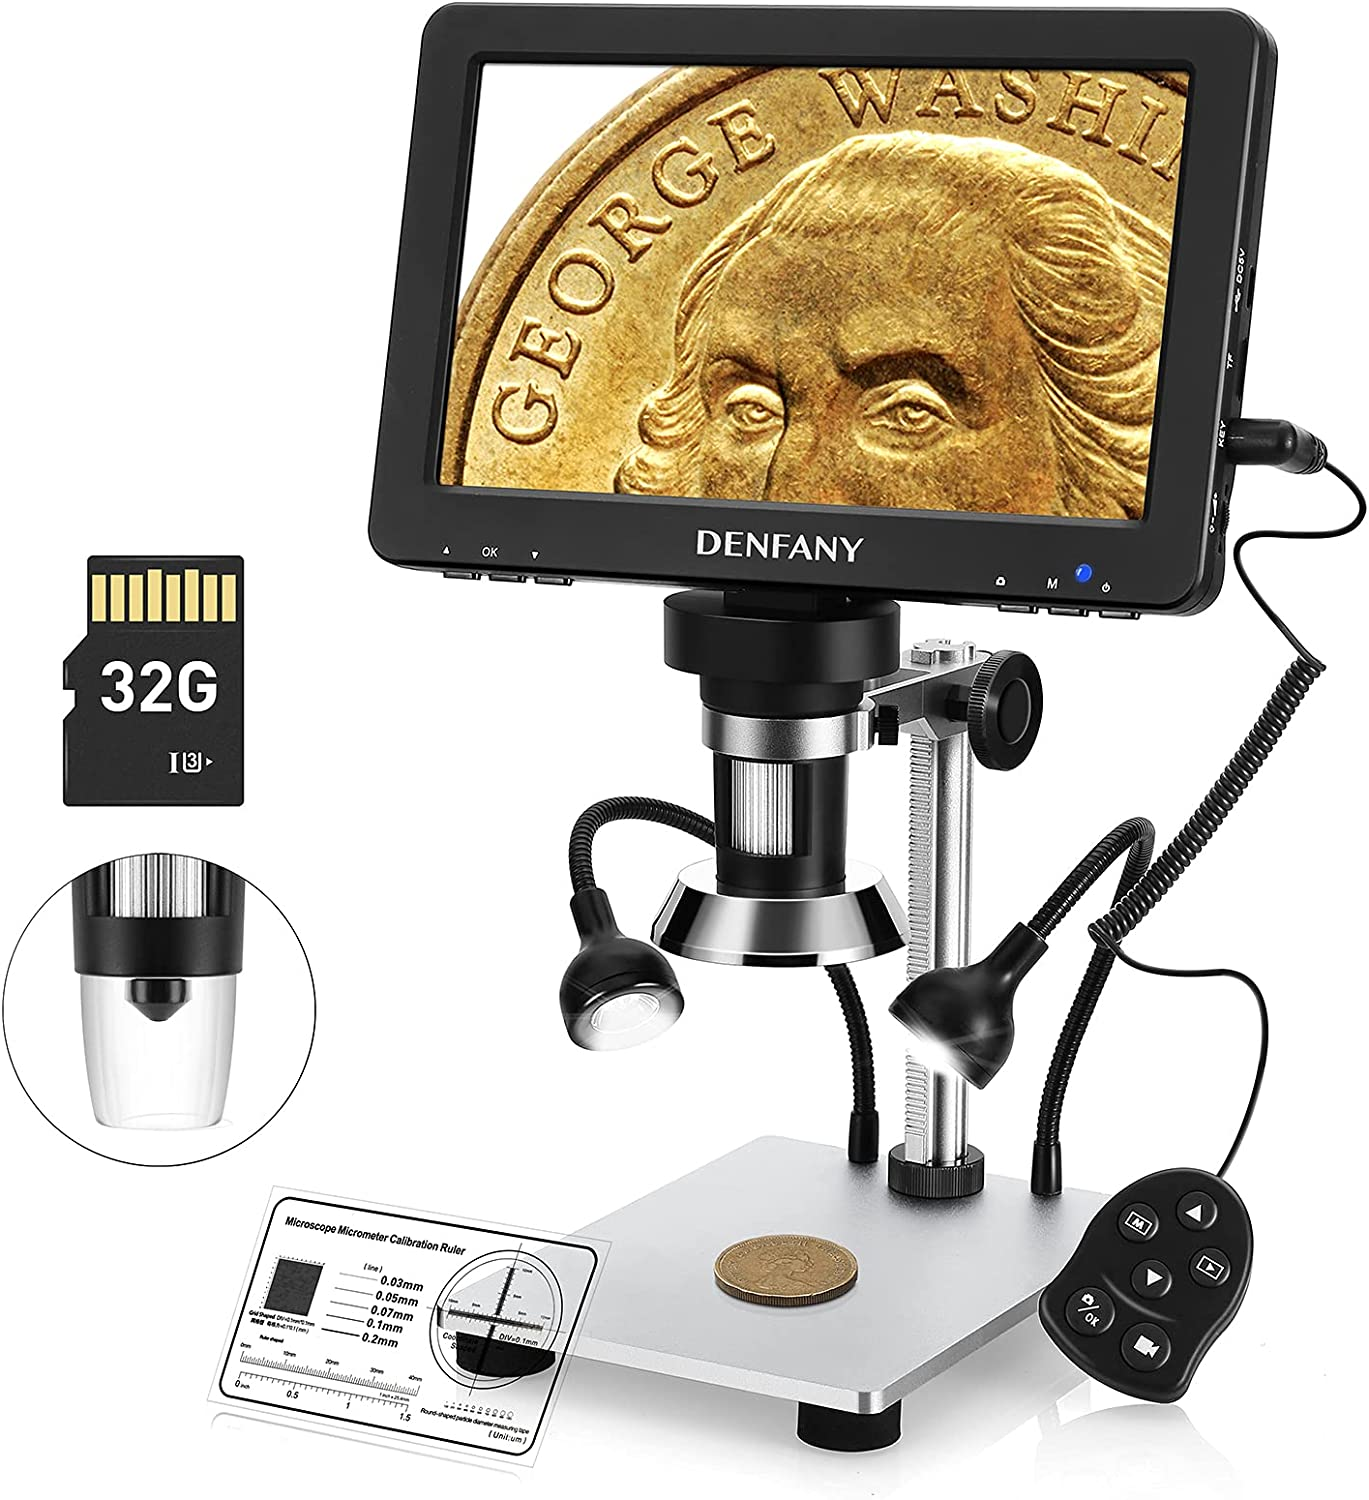 Denfany 7 Inch LCD Digital Microscope with 32GB TF Card, 1200X Maginfication 1080P Video 12MP Camera Microscopes Handheld USB Wired Remote Metal Stand, 10 LED Light Windows/Mac OS Compatible